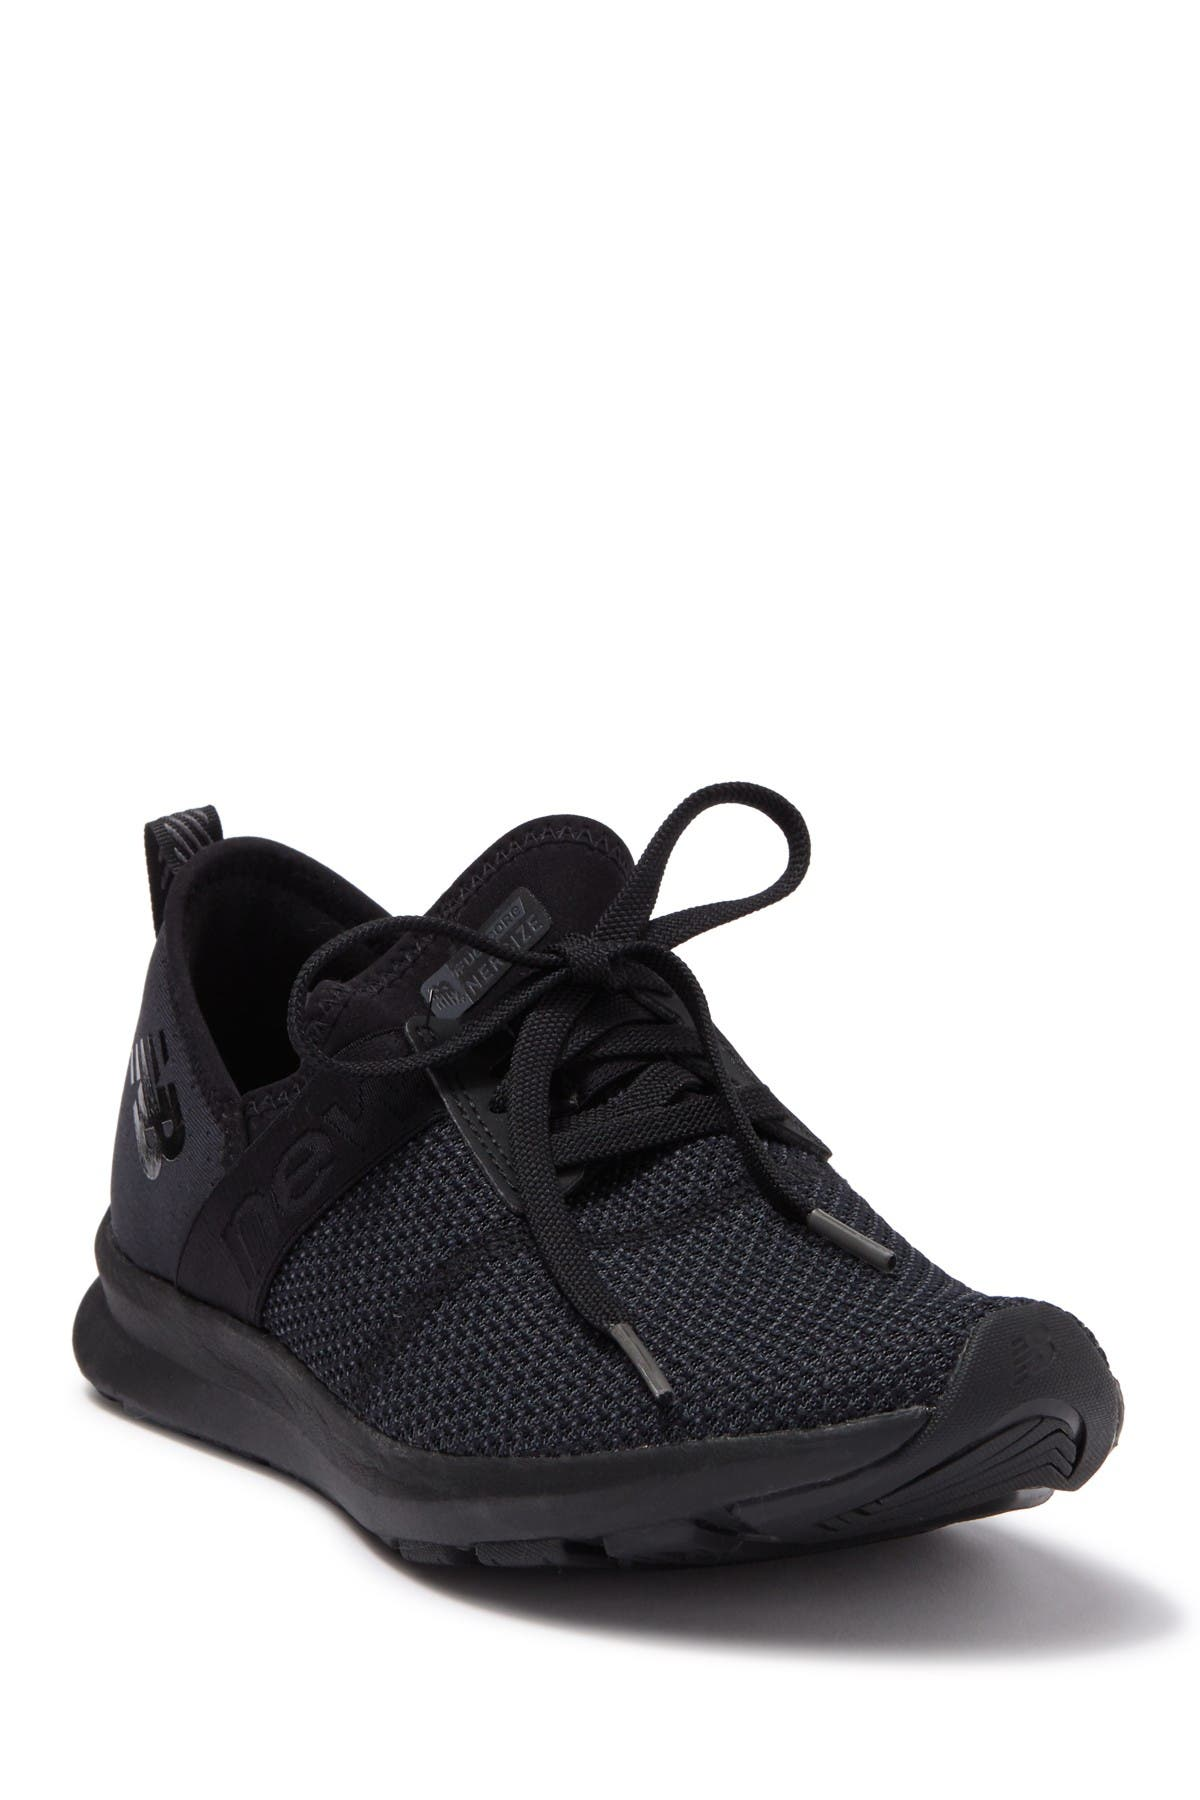 Image of New Balance FuelCore Nergize Cross Training Sneaker